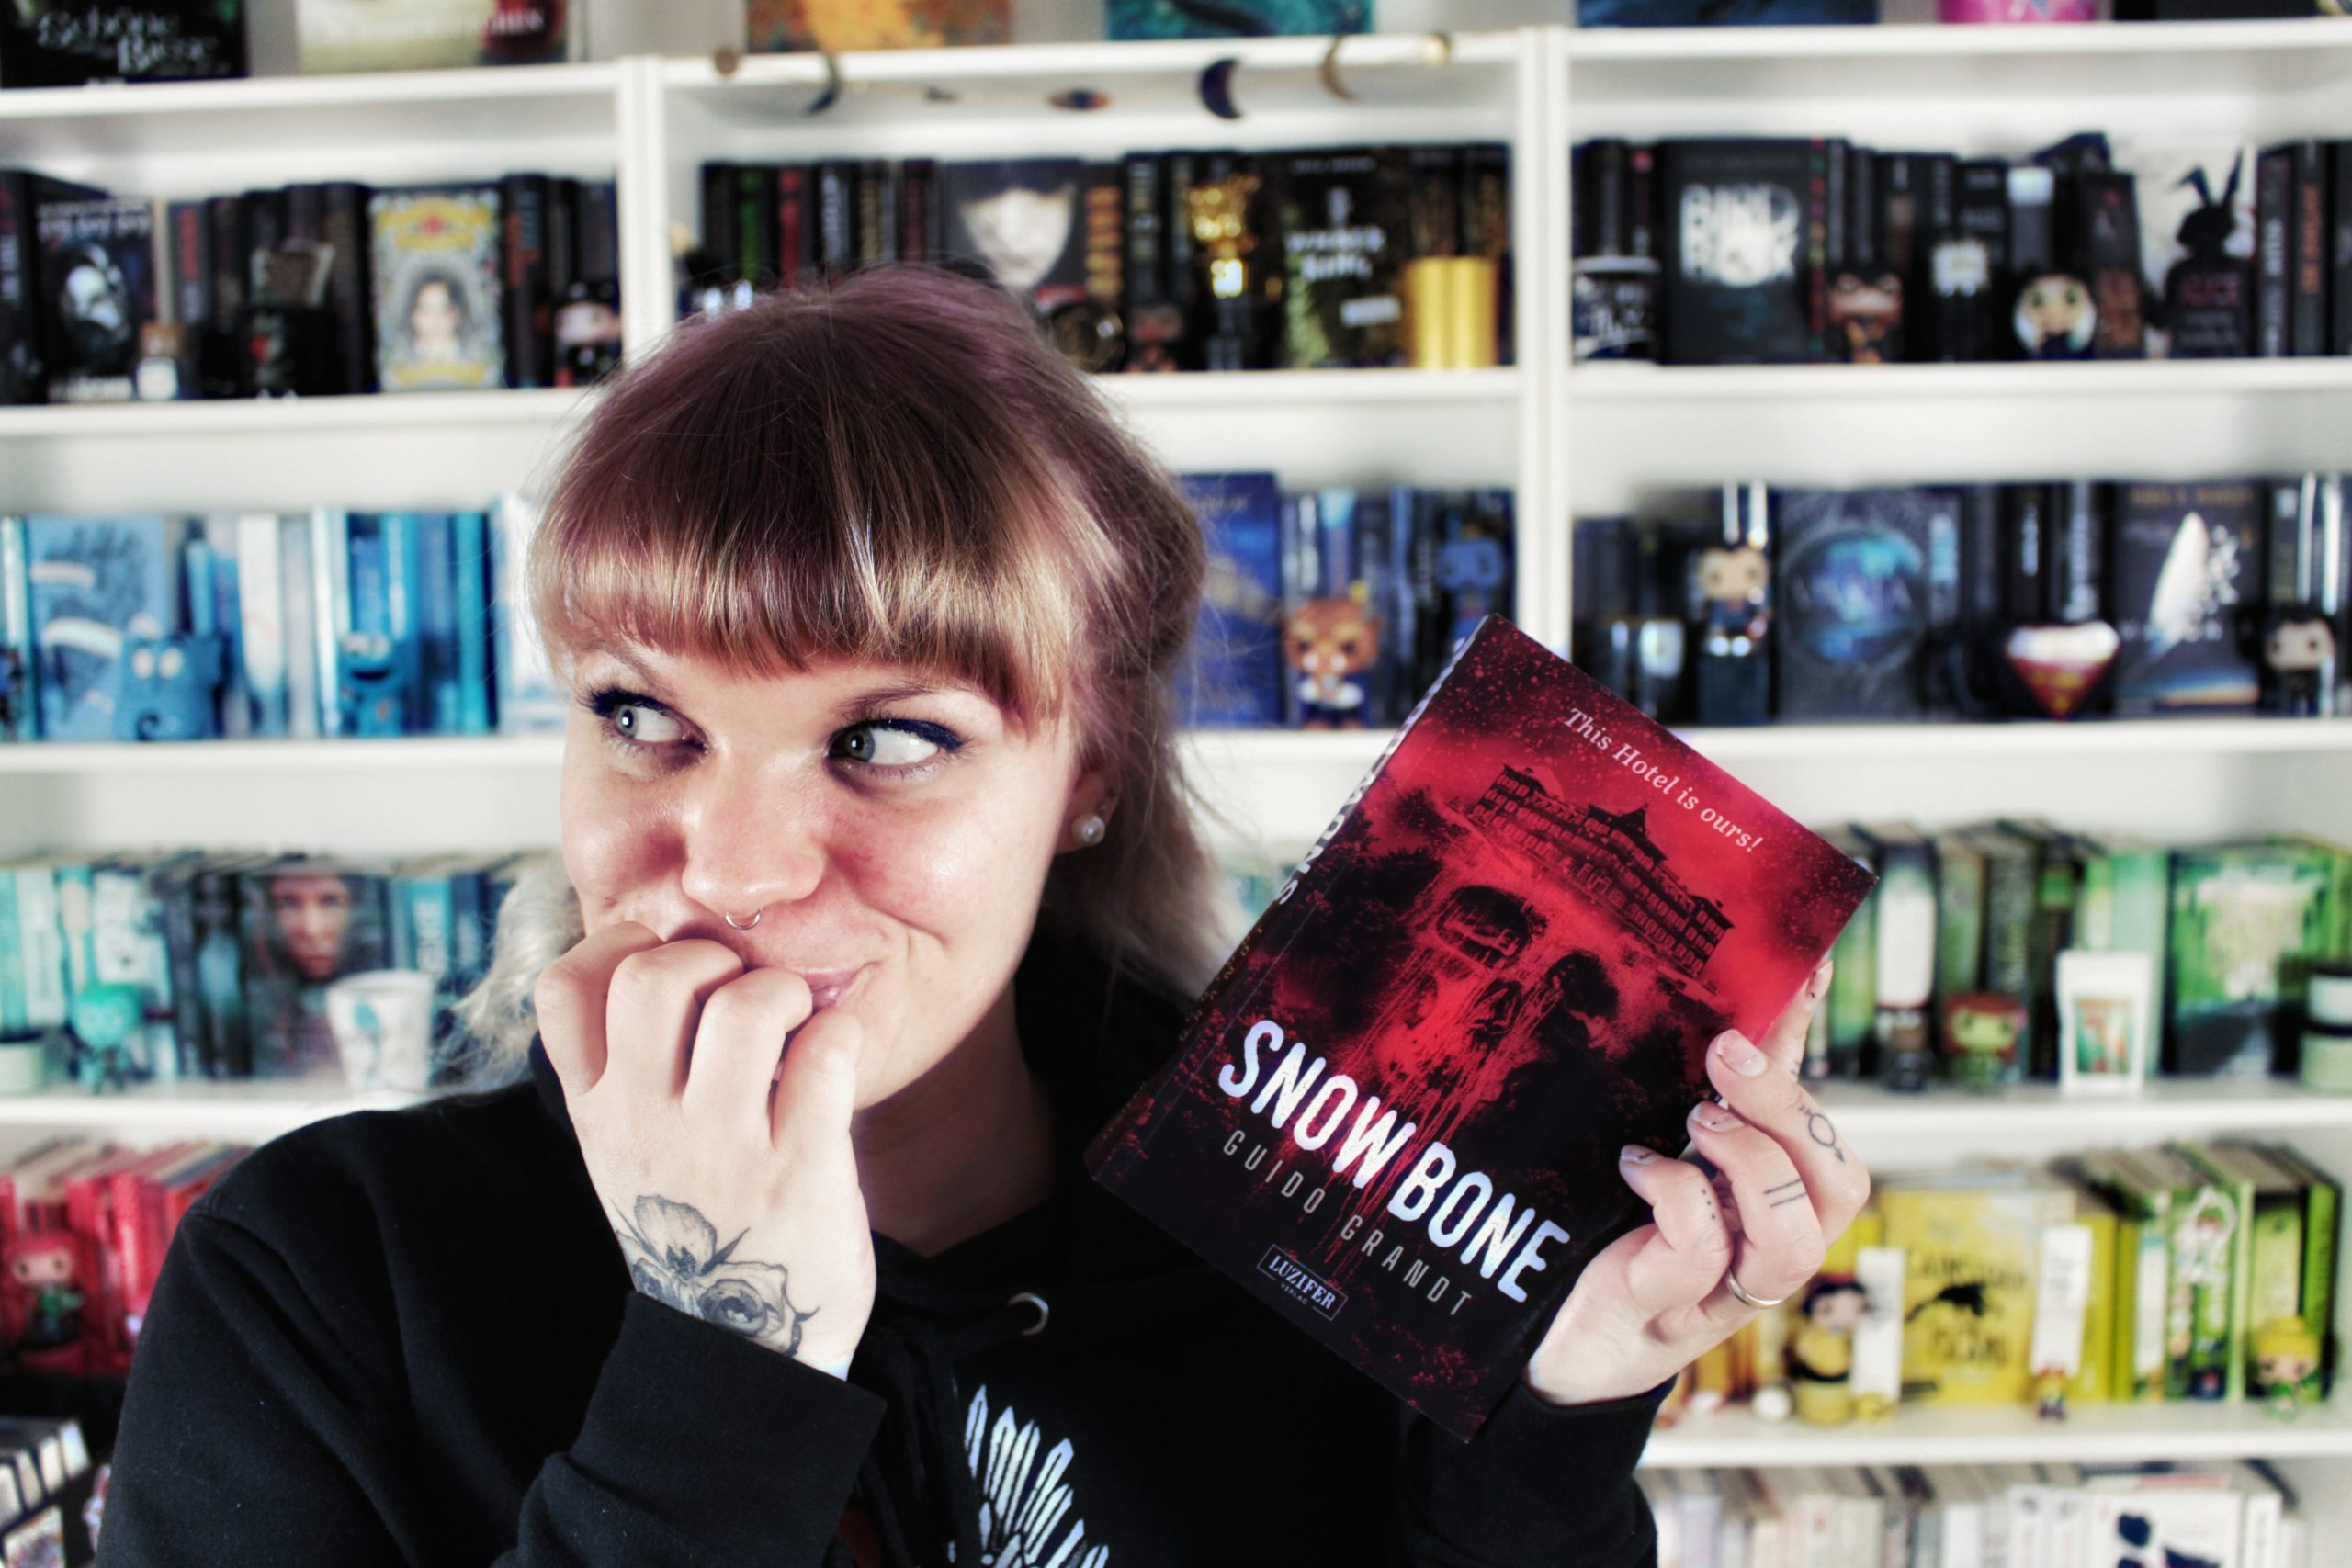 Rezension | Snow Bone von Guido Grandt